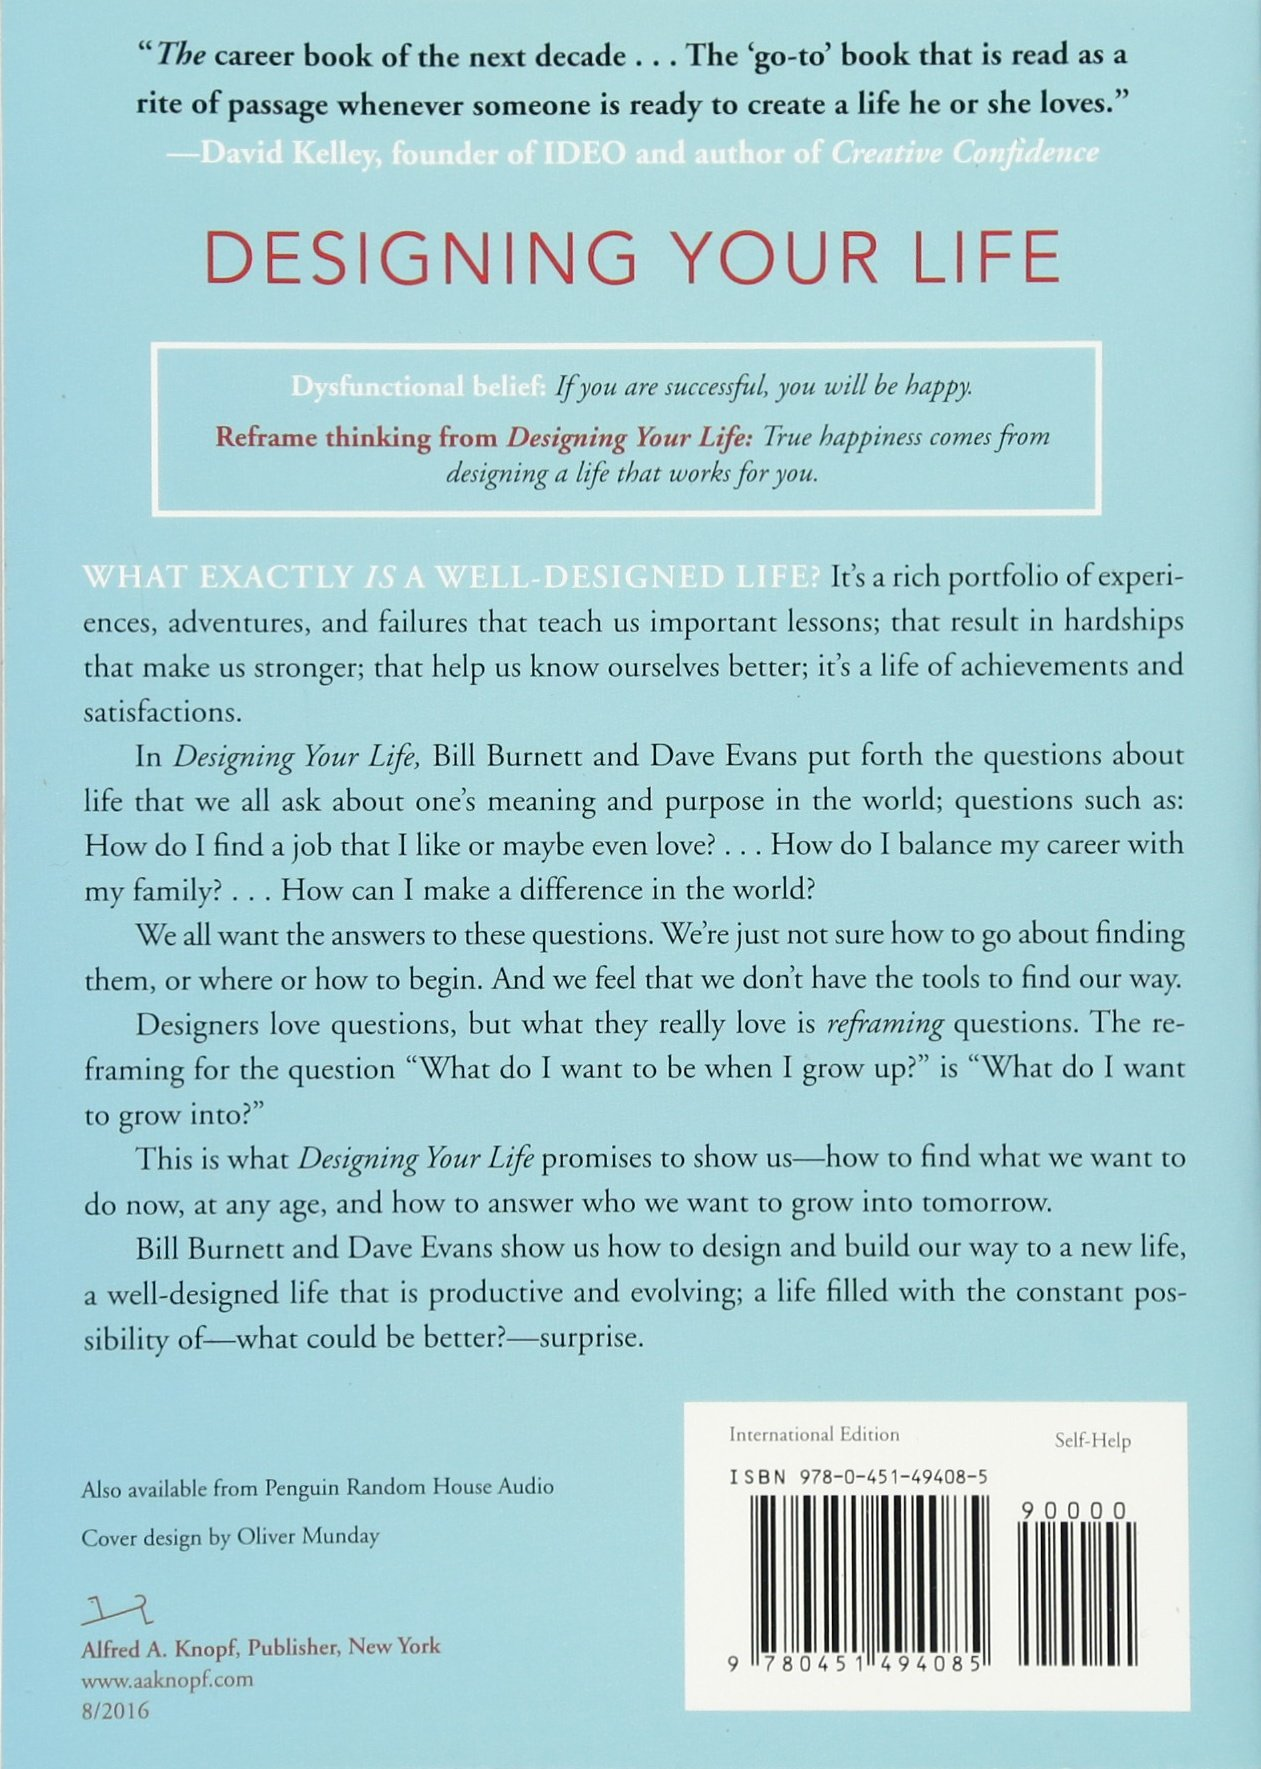 Designing Your Life How To Build A Well Lived Joyful Life How To Bill Burnett Dave Evans Amazon De Bucher